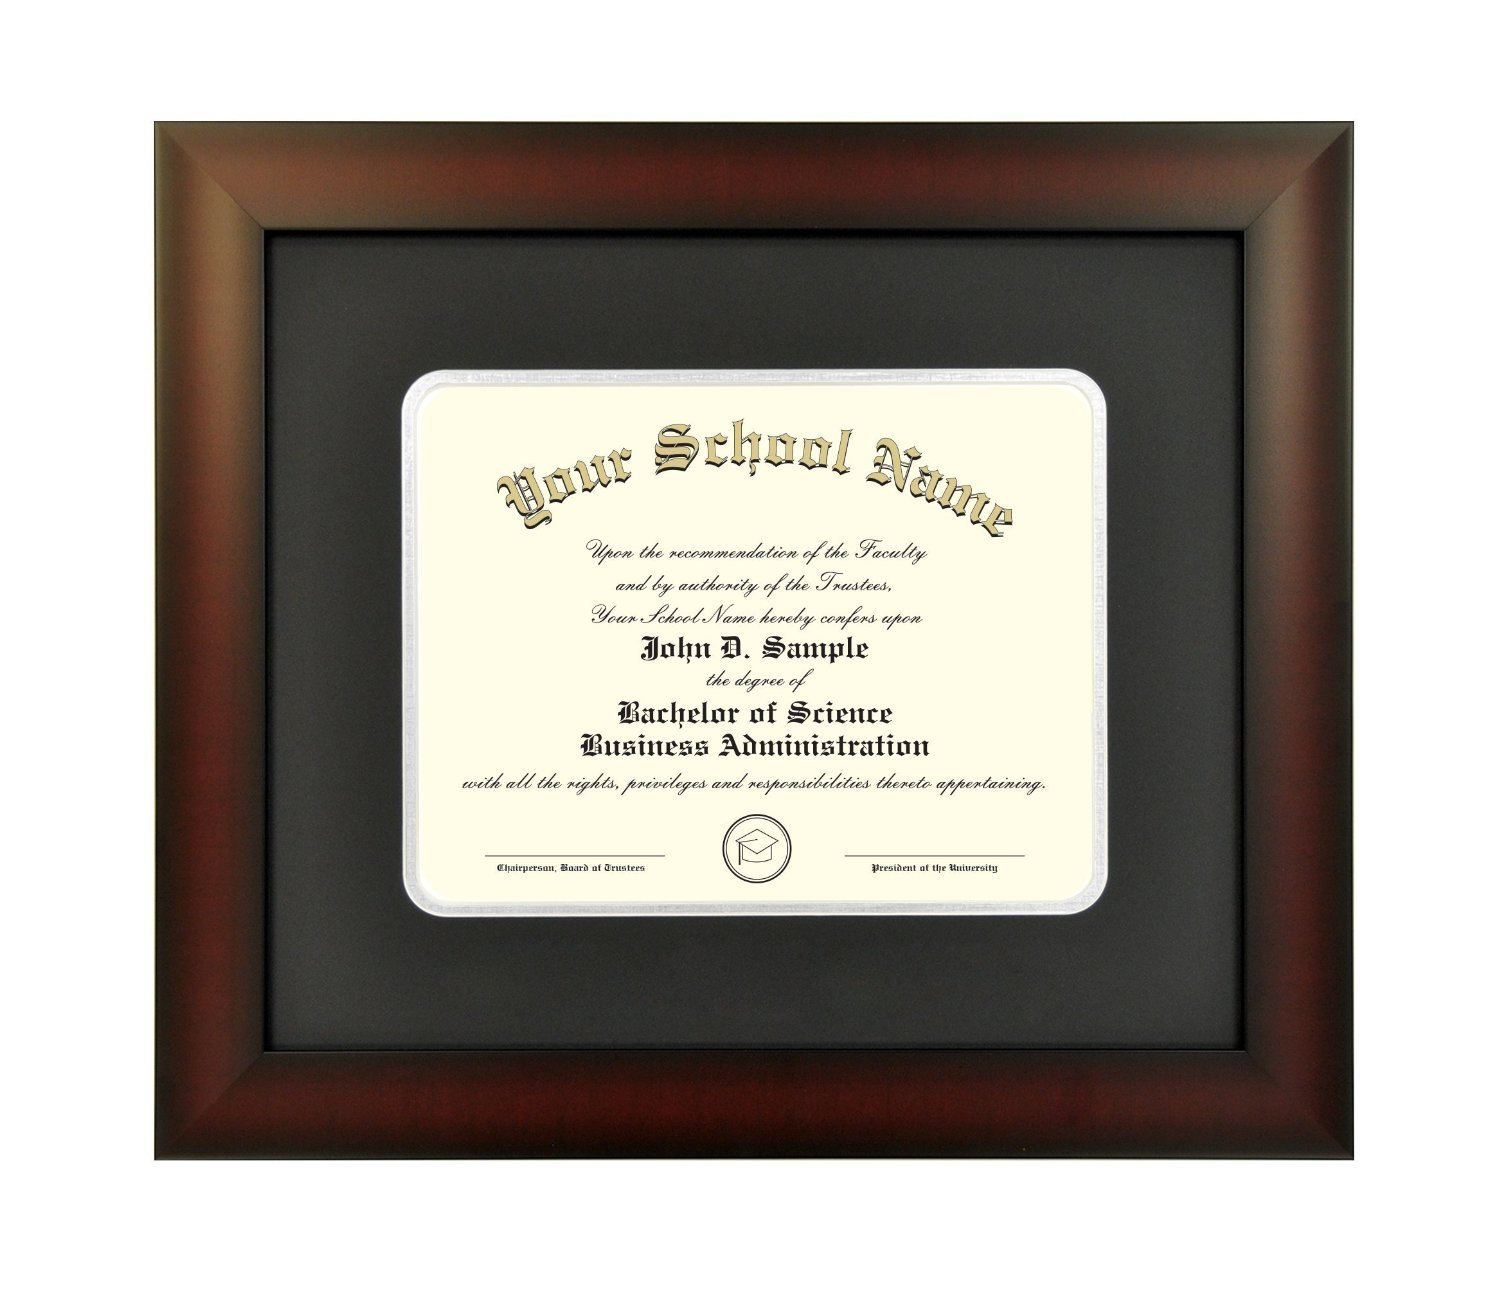 Mahogany Finish Infinity Diploma Frame with Black and Silver Mats by Celebration Frames (8 x 10